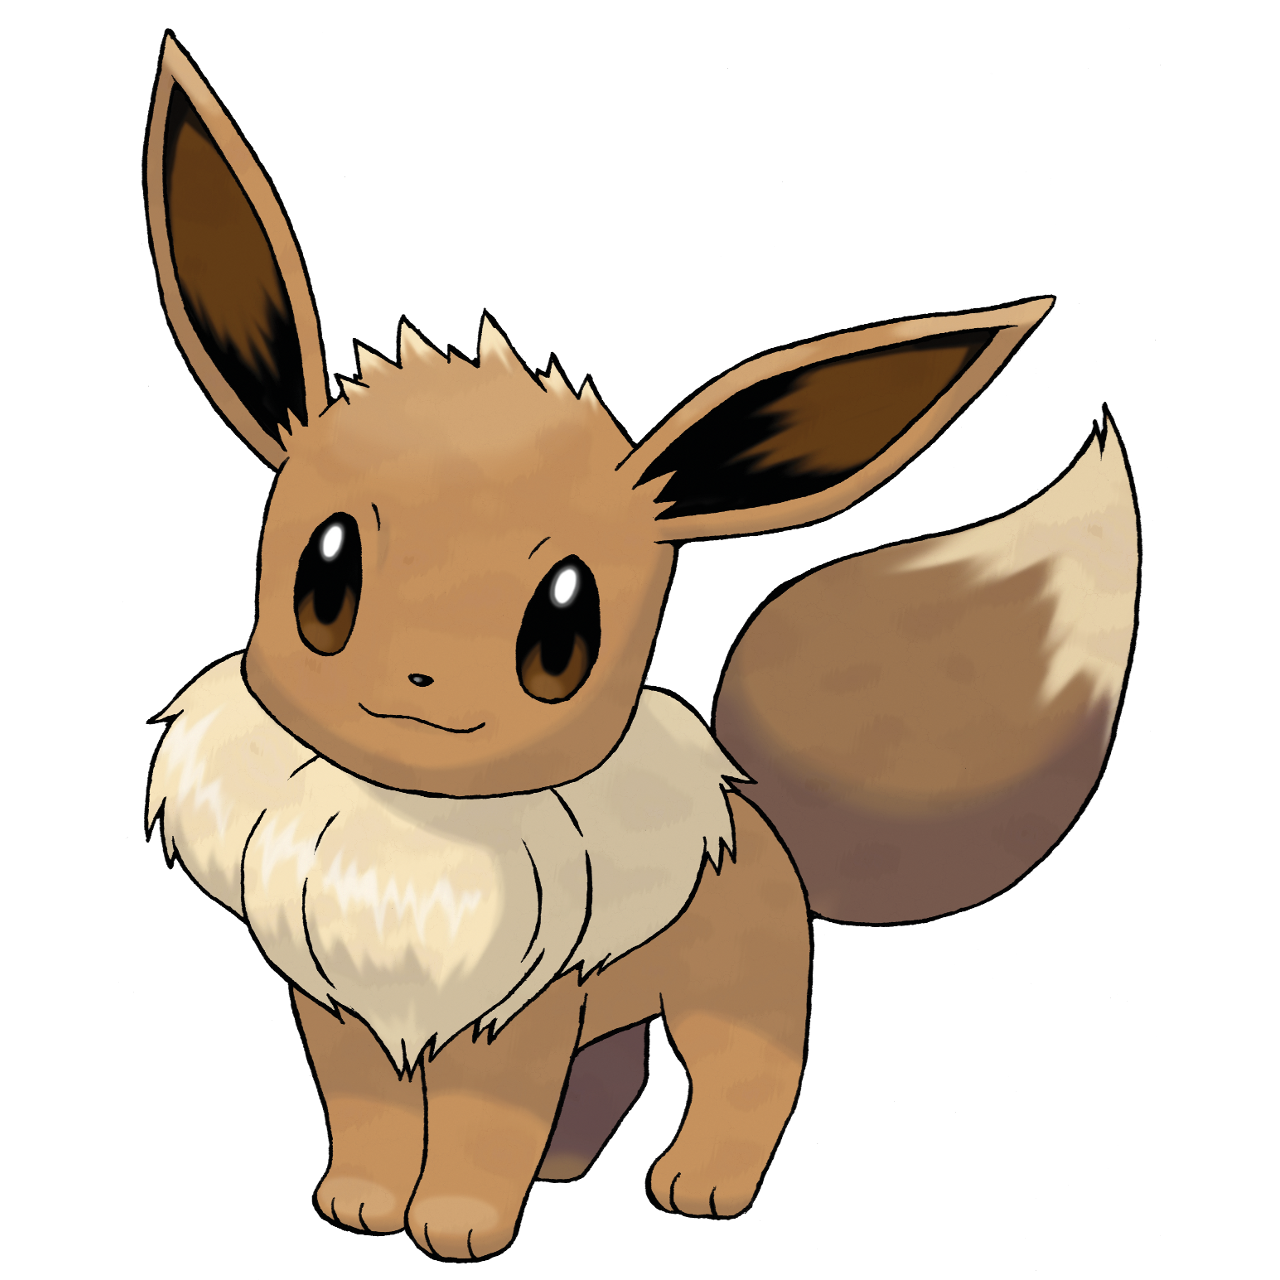 Pokemon clipart eeveelutions. Eevee project wiki fandom